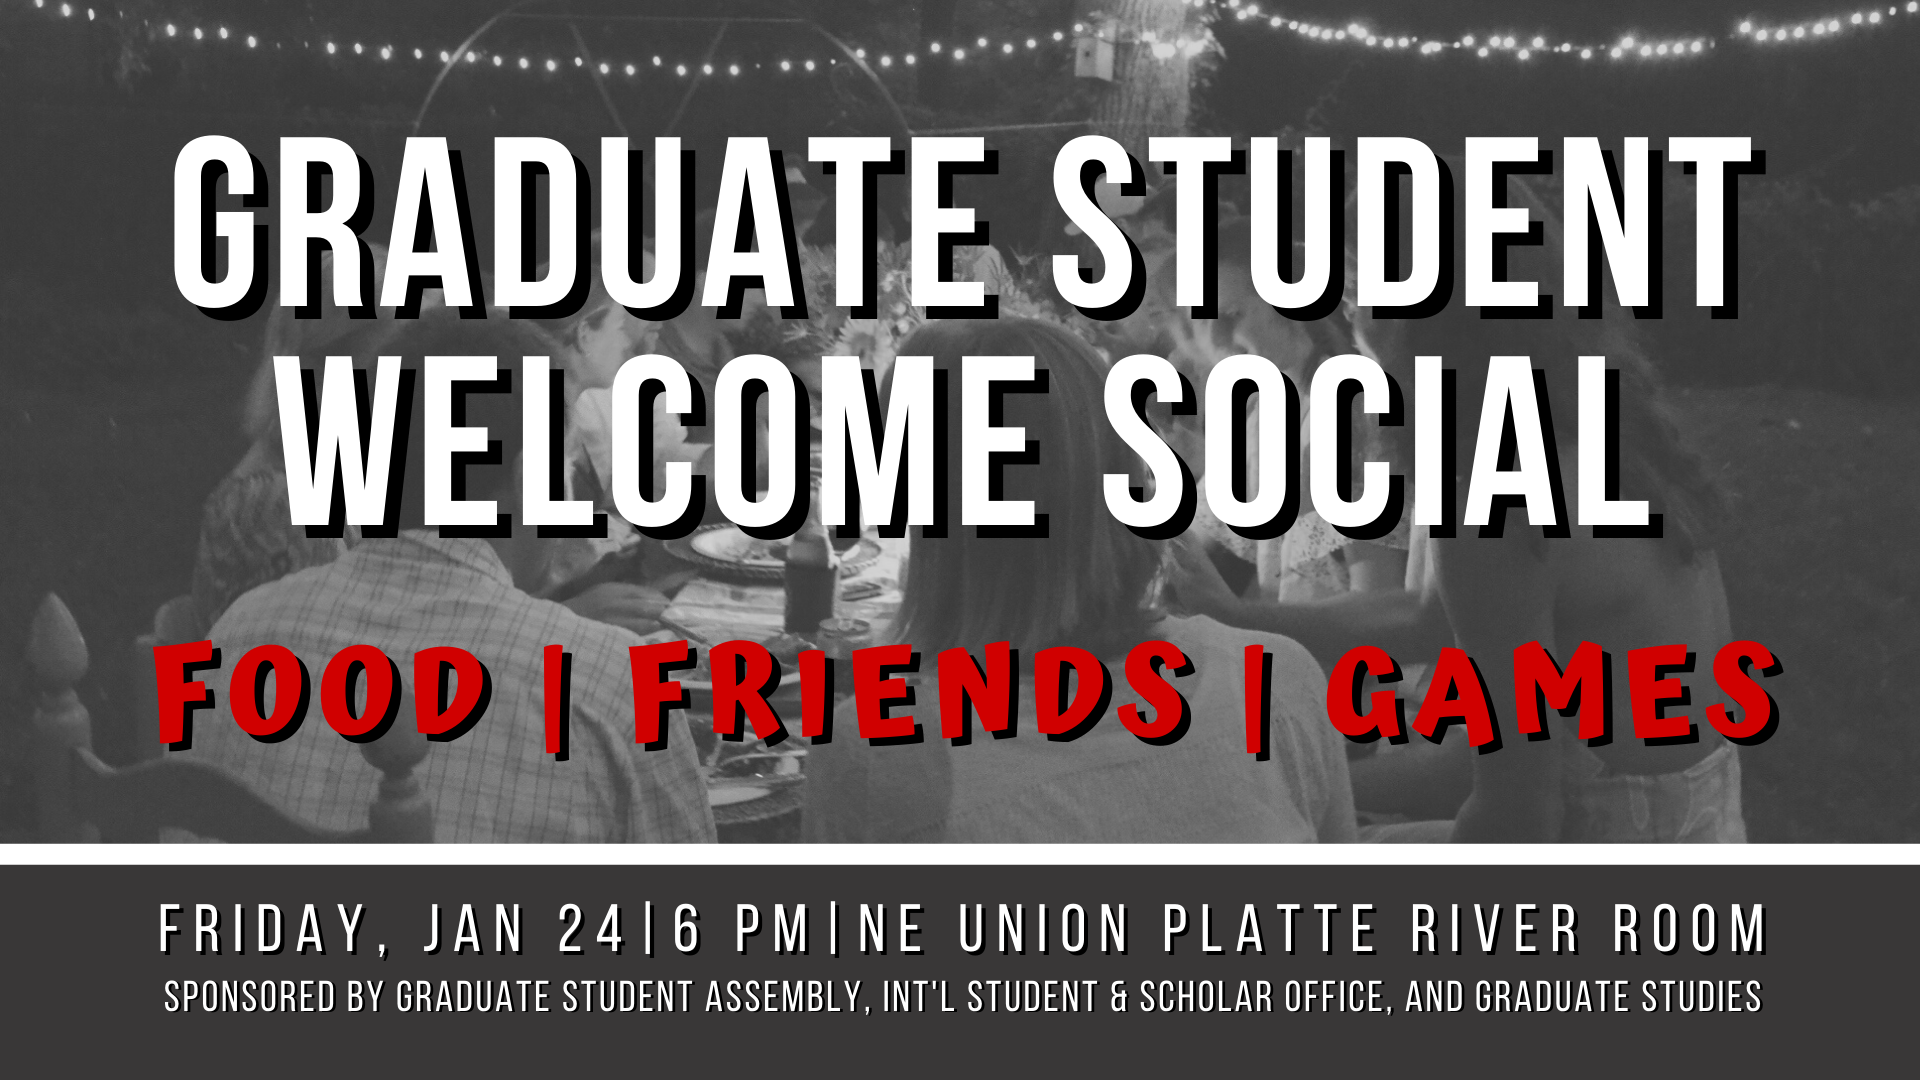 Sponsored by the Graduate Student Assembly, International Student & Scholar Office, and the Office of Graduate Studies.